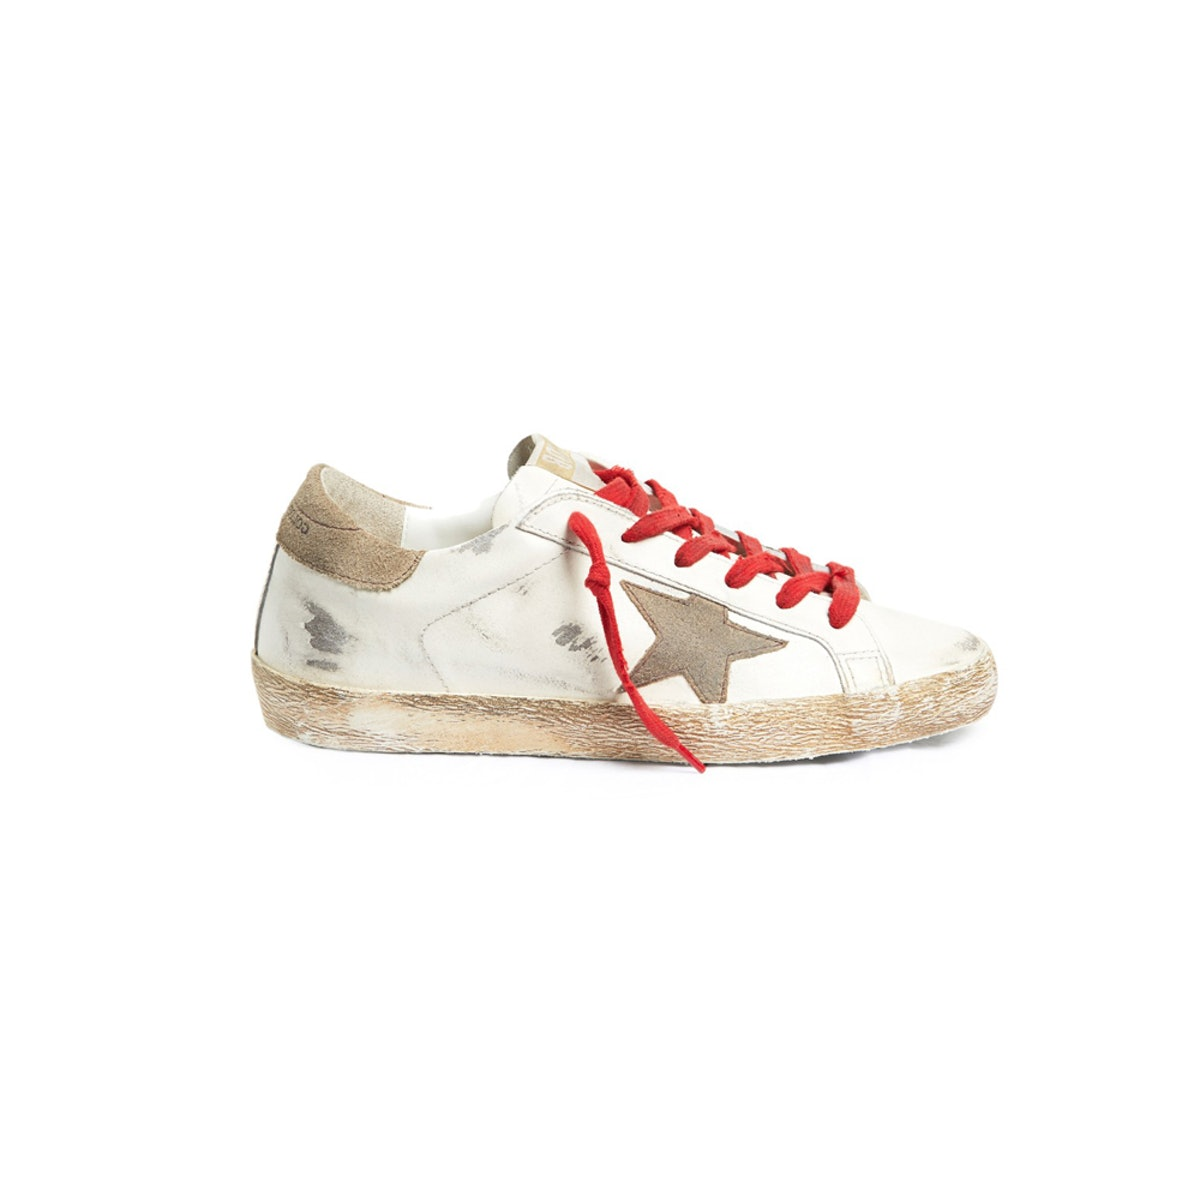 Golden-Goose-Deluxe-Brand-sneakers,-$389,-matchesfashion